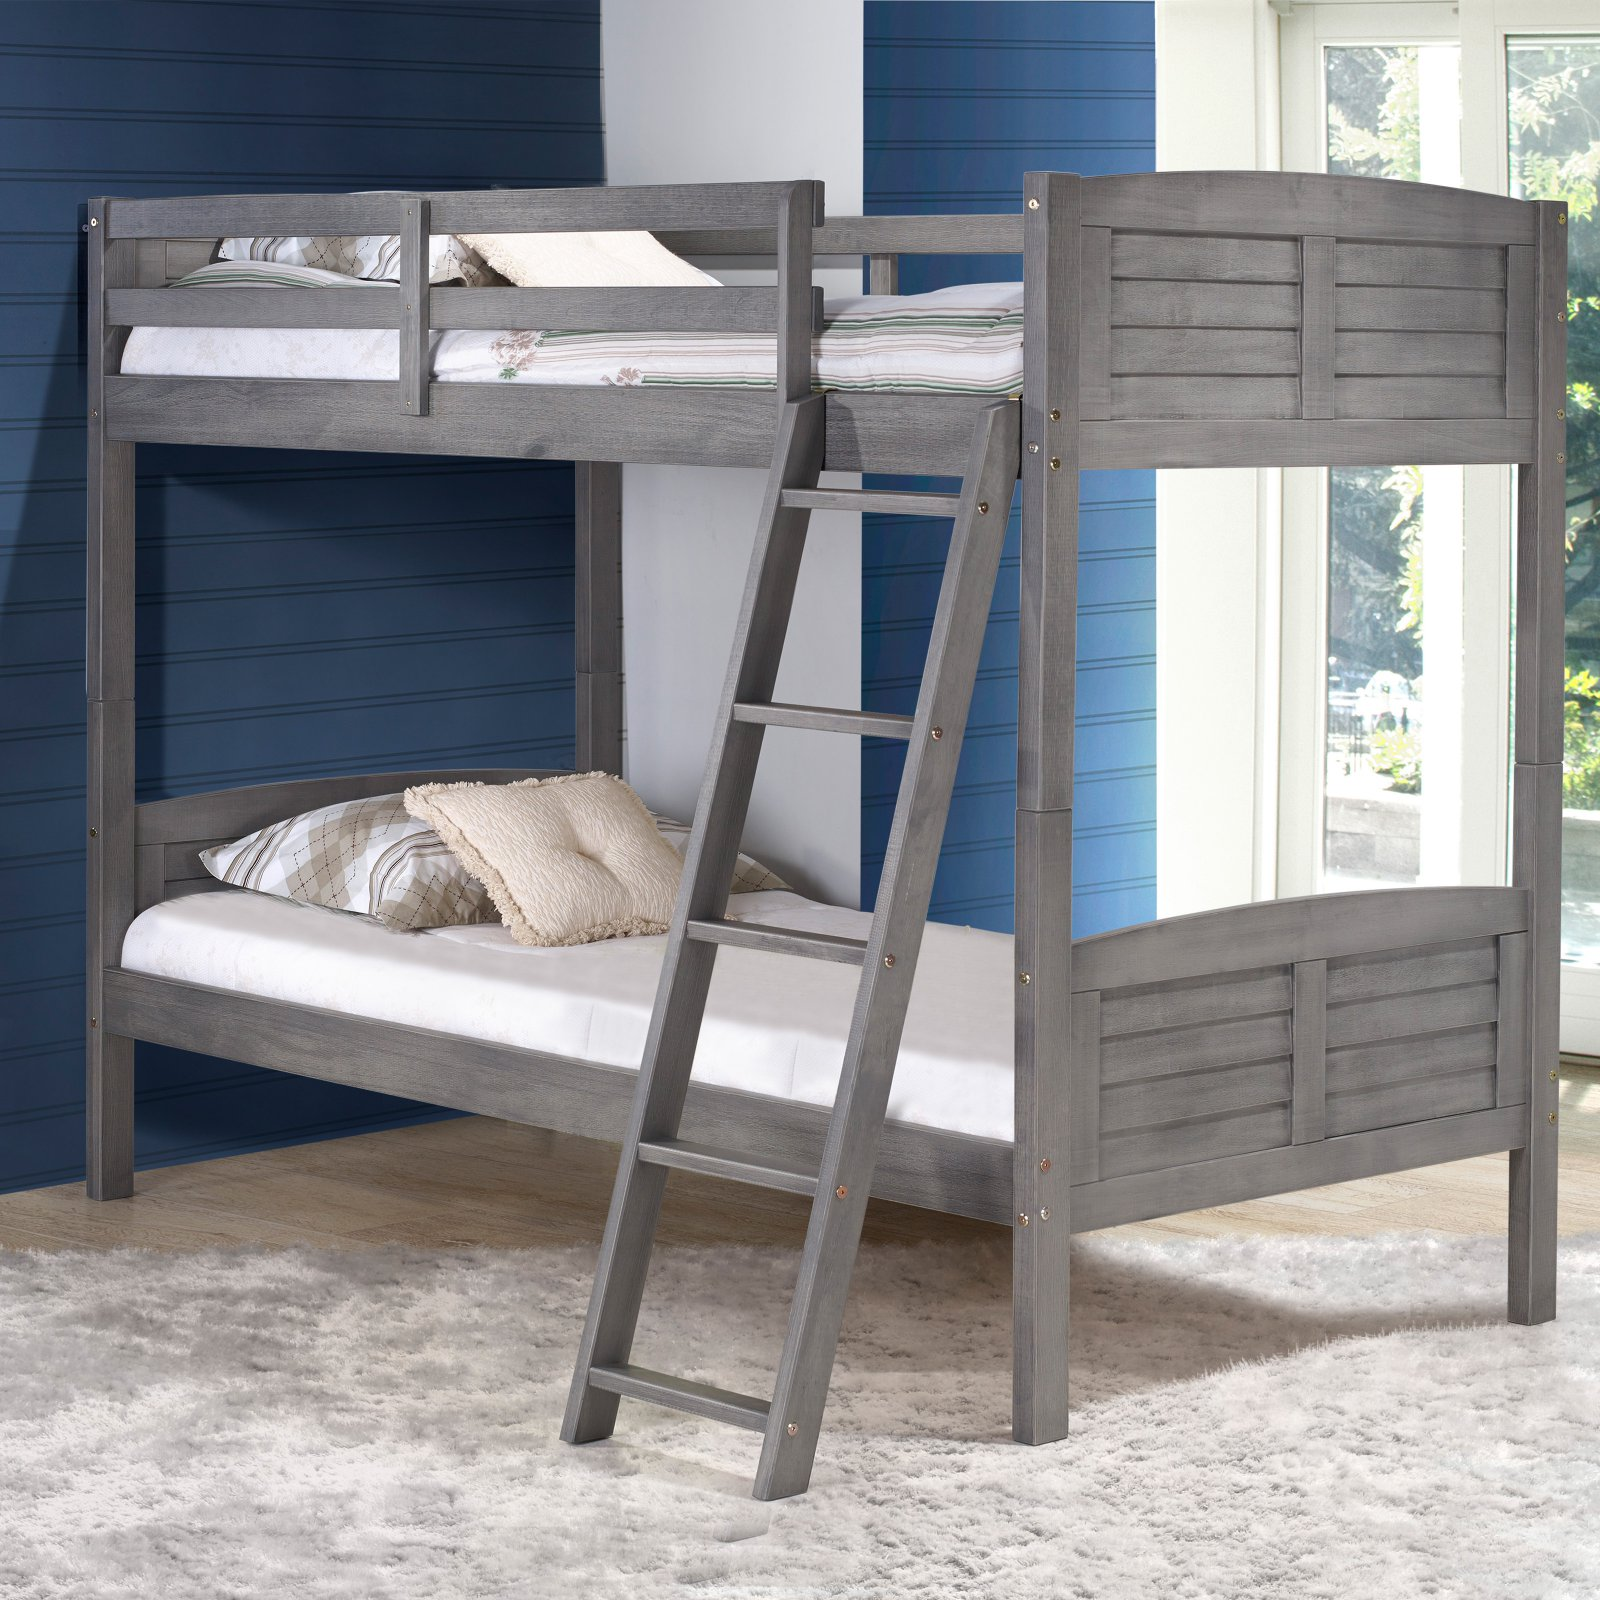 Donco Louver Twin over Twin Bunk Bed - Antique Grey